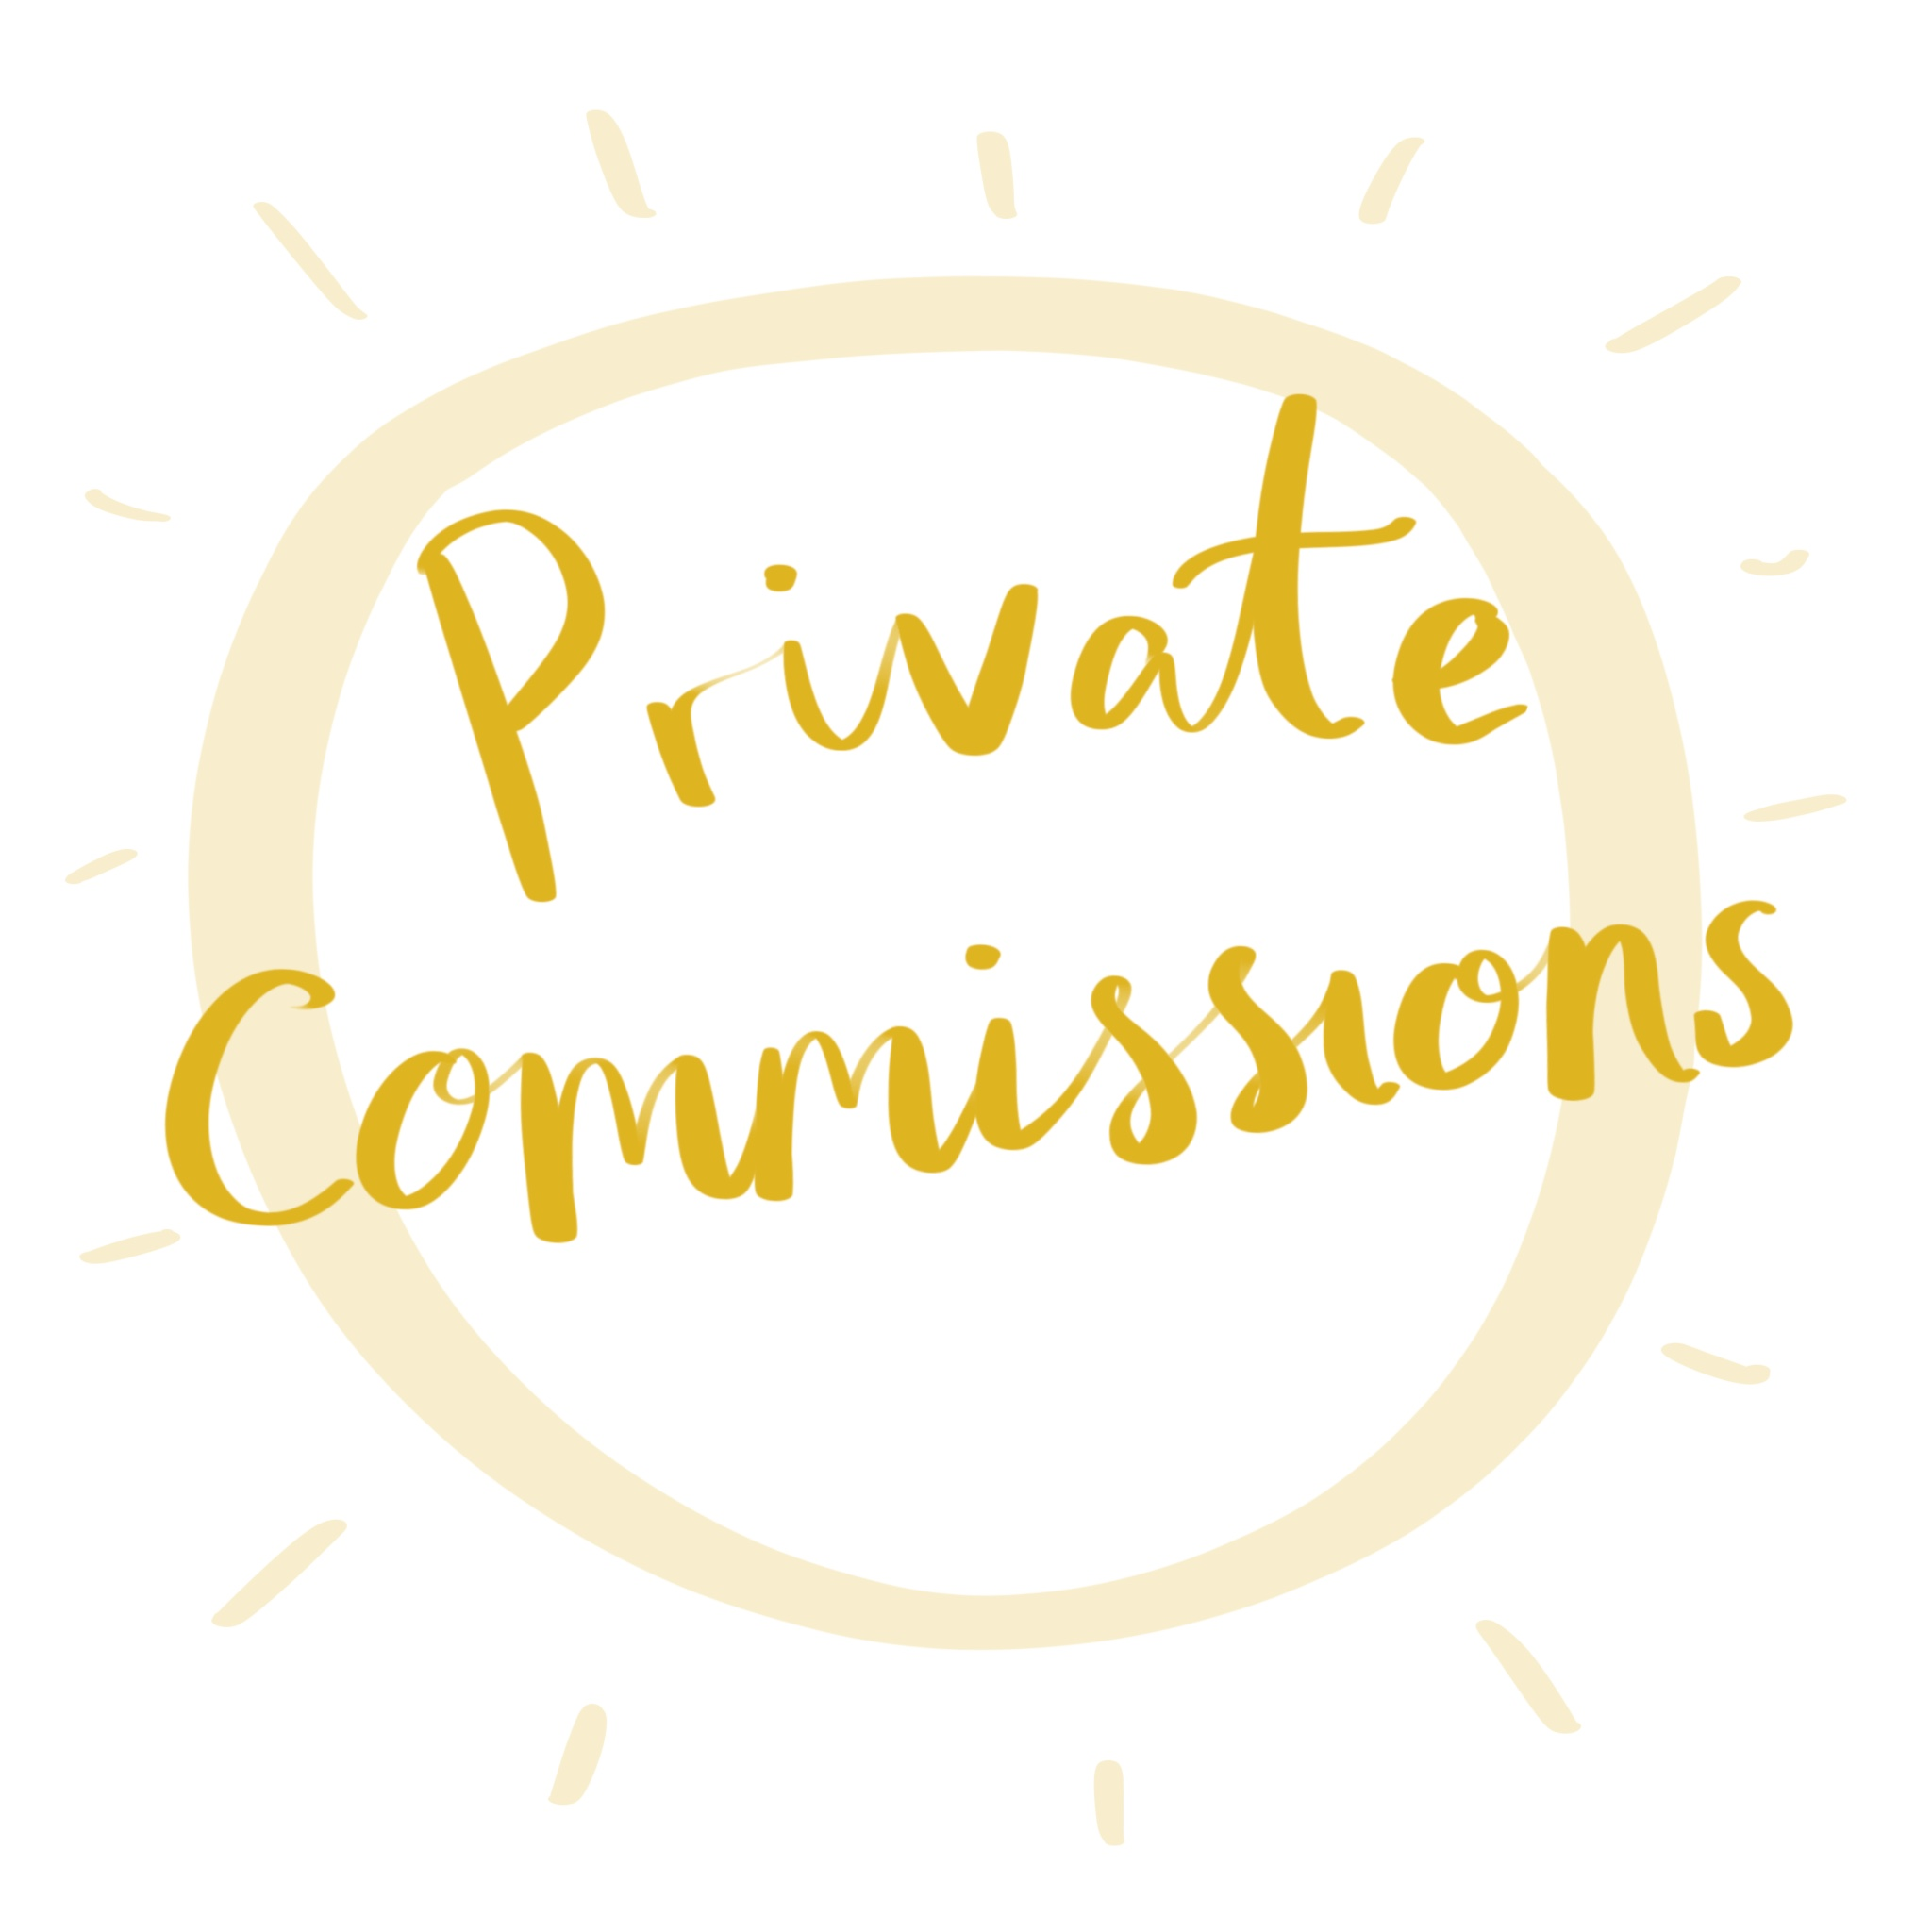 Are you a company or organisation looking to commission an illustrated map, storyboard, poster design, hand lettering illustration, packaging illustration or other image? I'd love to hear from you to discuss your creative project. You can  view my portfolio by clicking here.    OR   Portraits and specially commissioned paintings start at £250.  Wedding stationery page is currently under construction. Stay tuned! Let me know if you'd like more information.